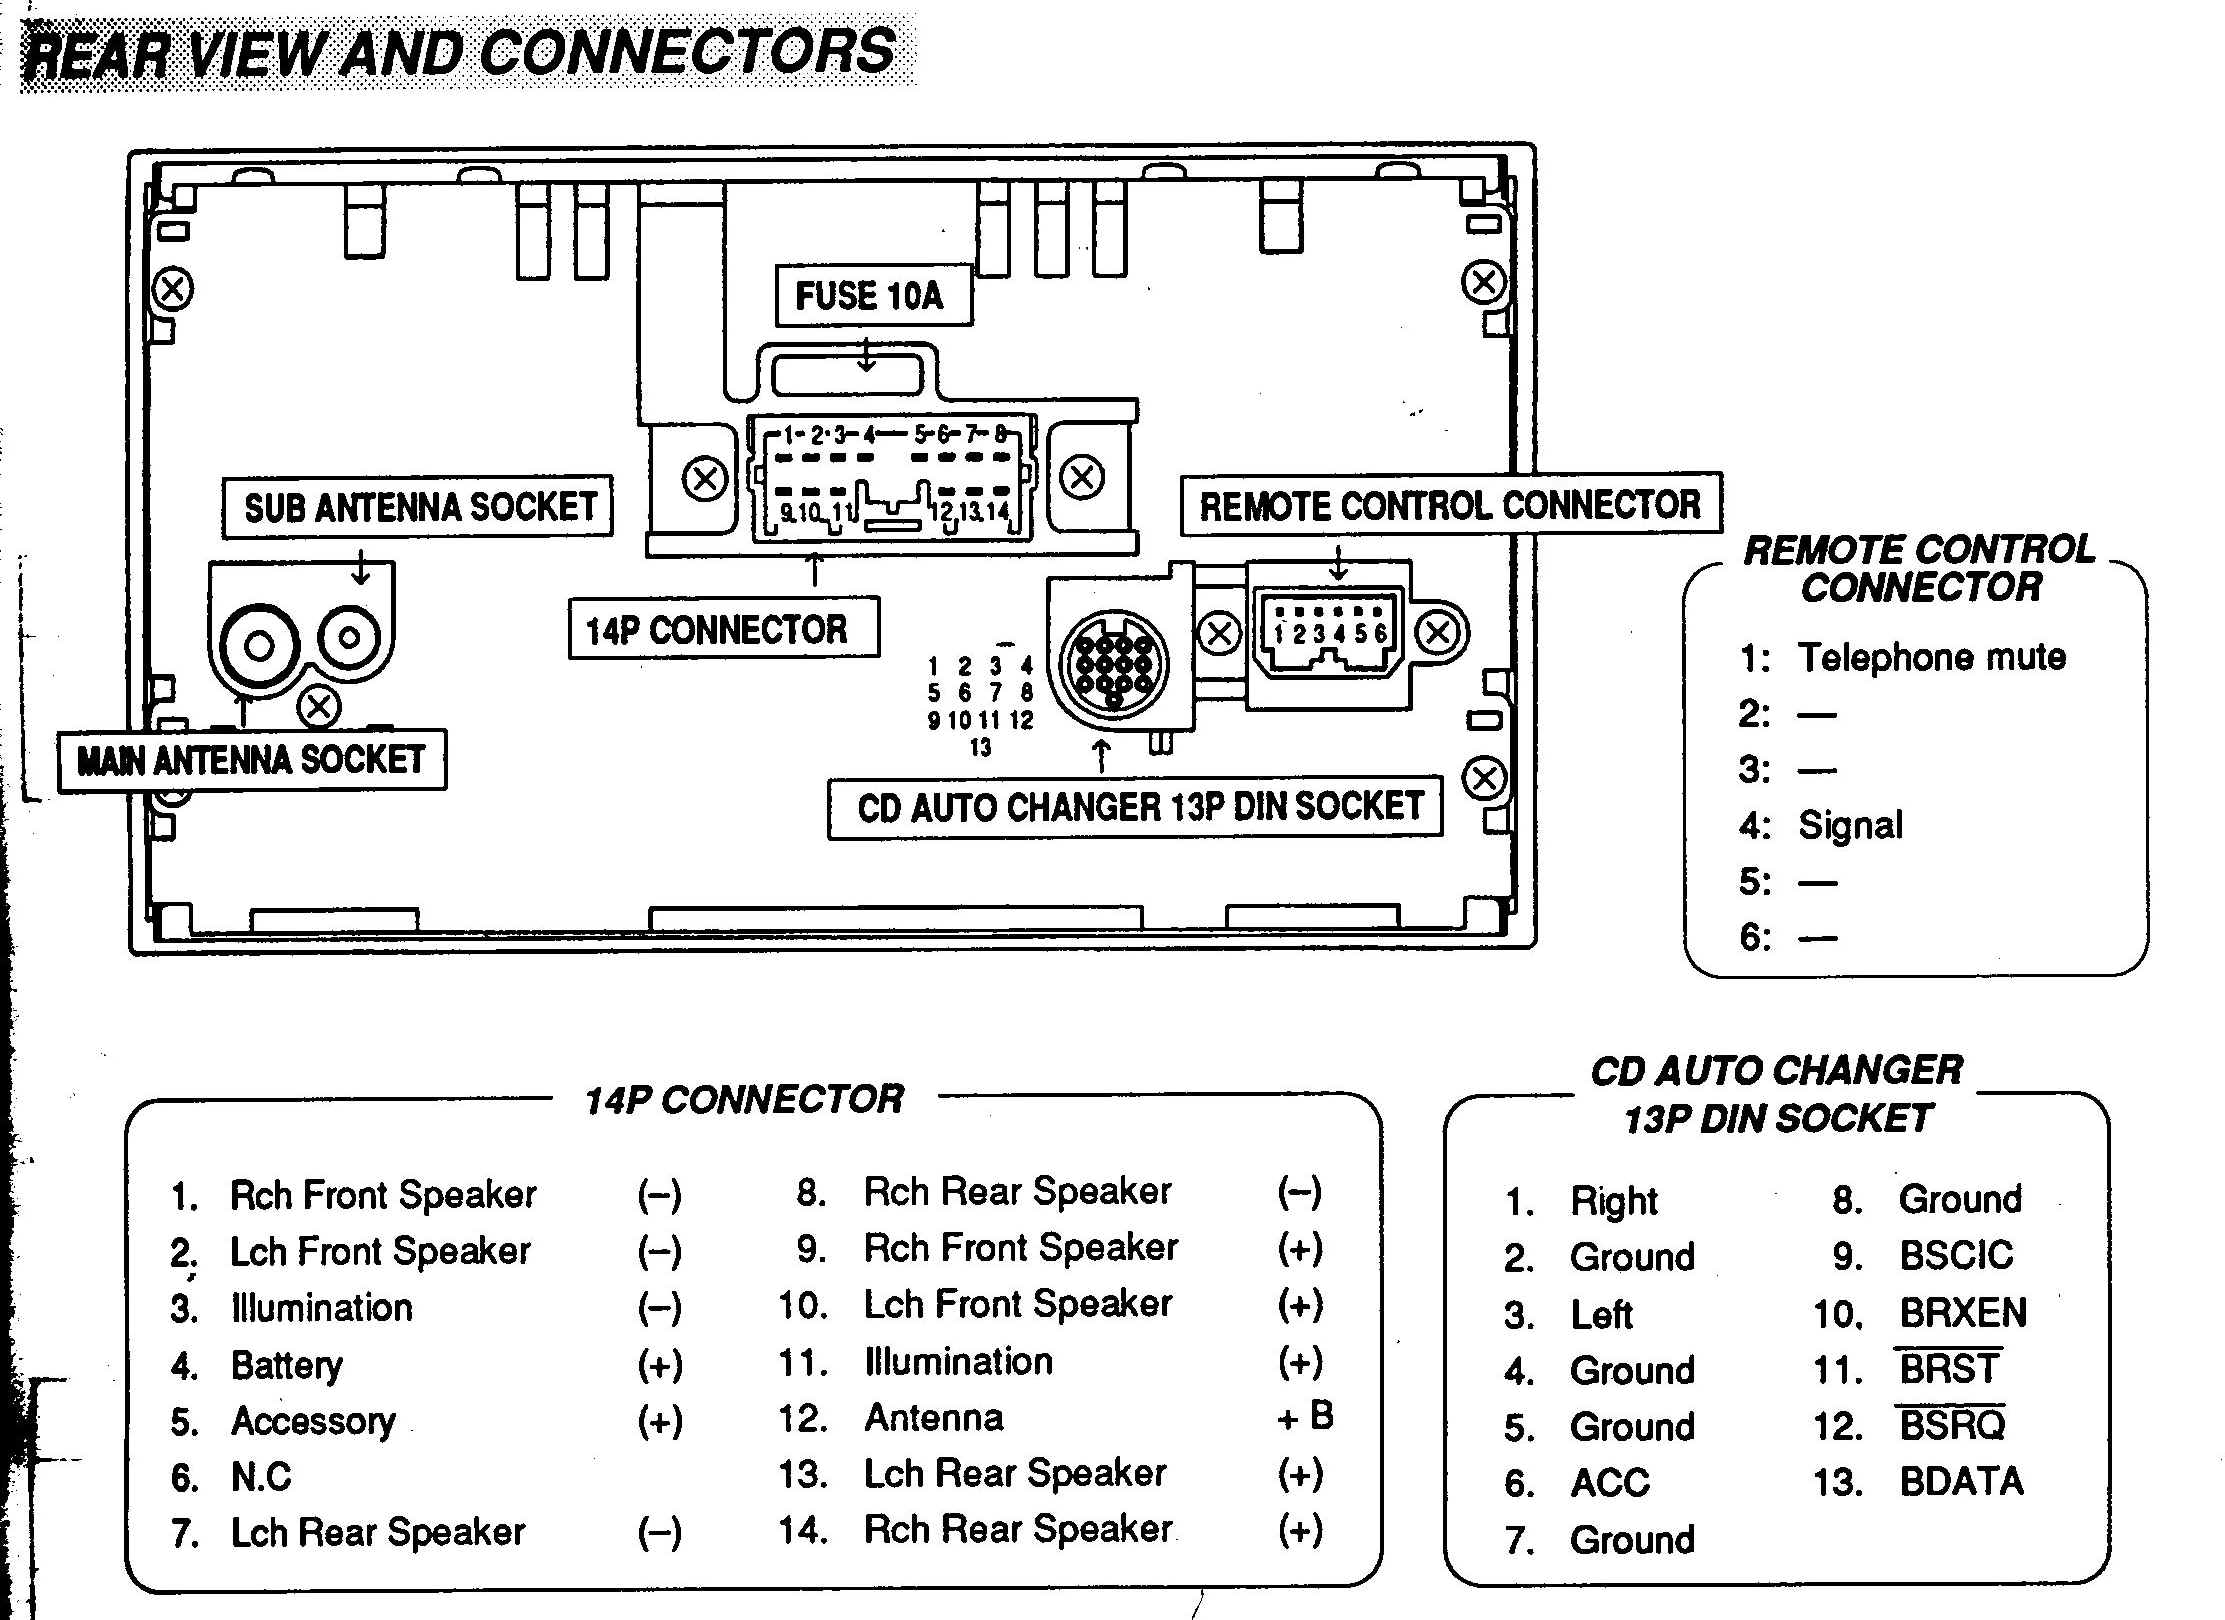 Car Audio Wire Diagram Codes Mitsubishi - Factory Car Stereo Repair - Bose  Stereo, Speaker / Amplifier RepairFactory Car Stereo Repair, Inc.